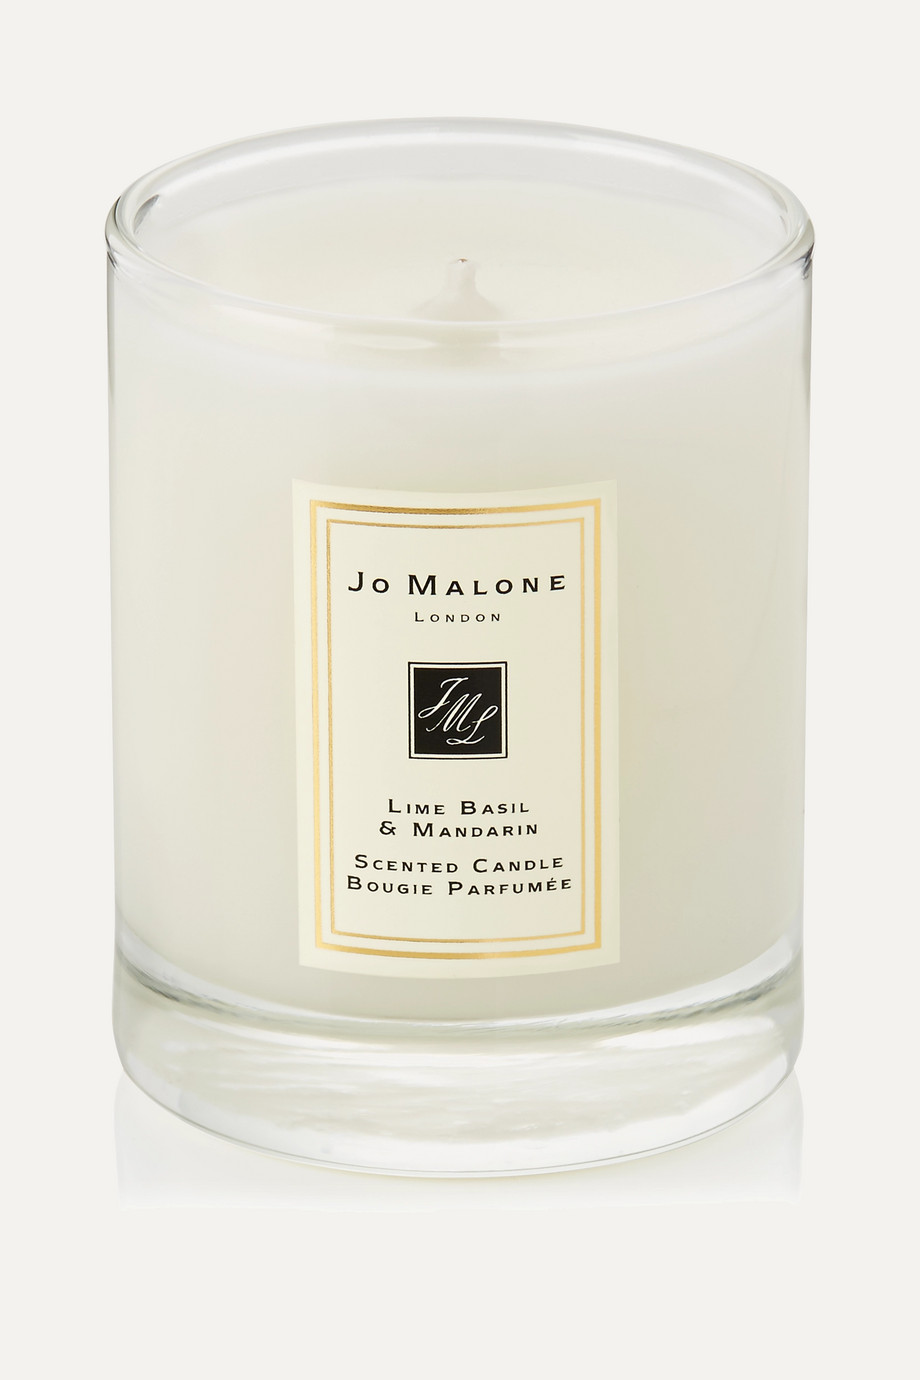 JO MALONE LONDON Lime Basil & Mandarin Scented Travel Candle, 60g